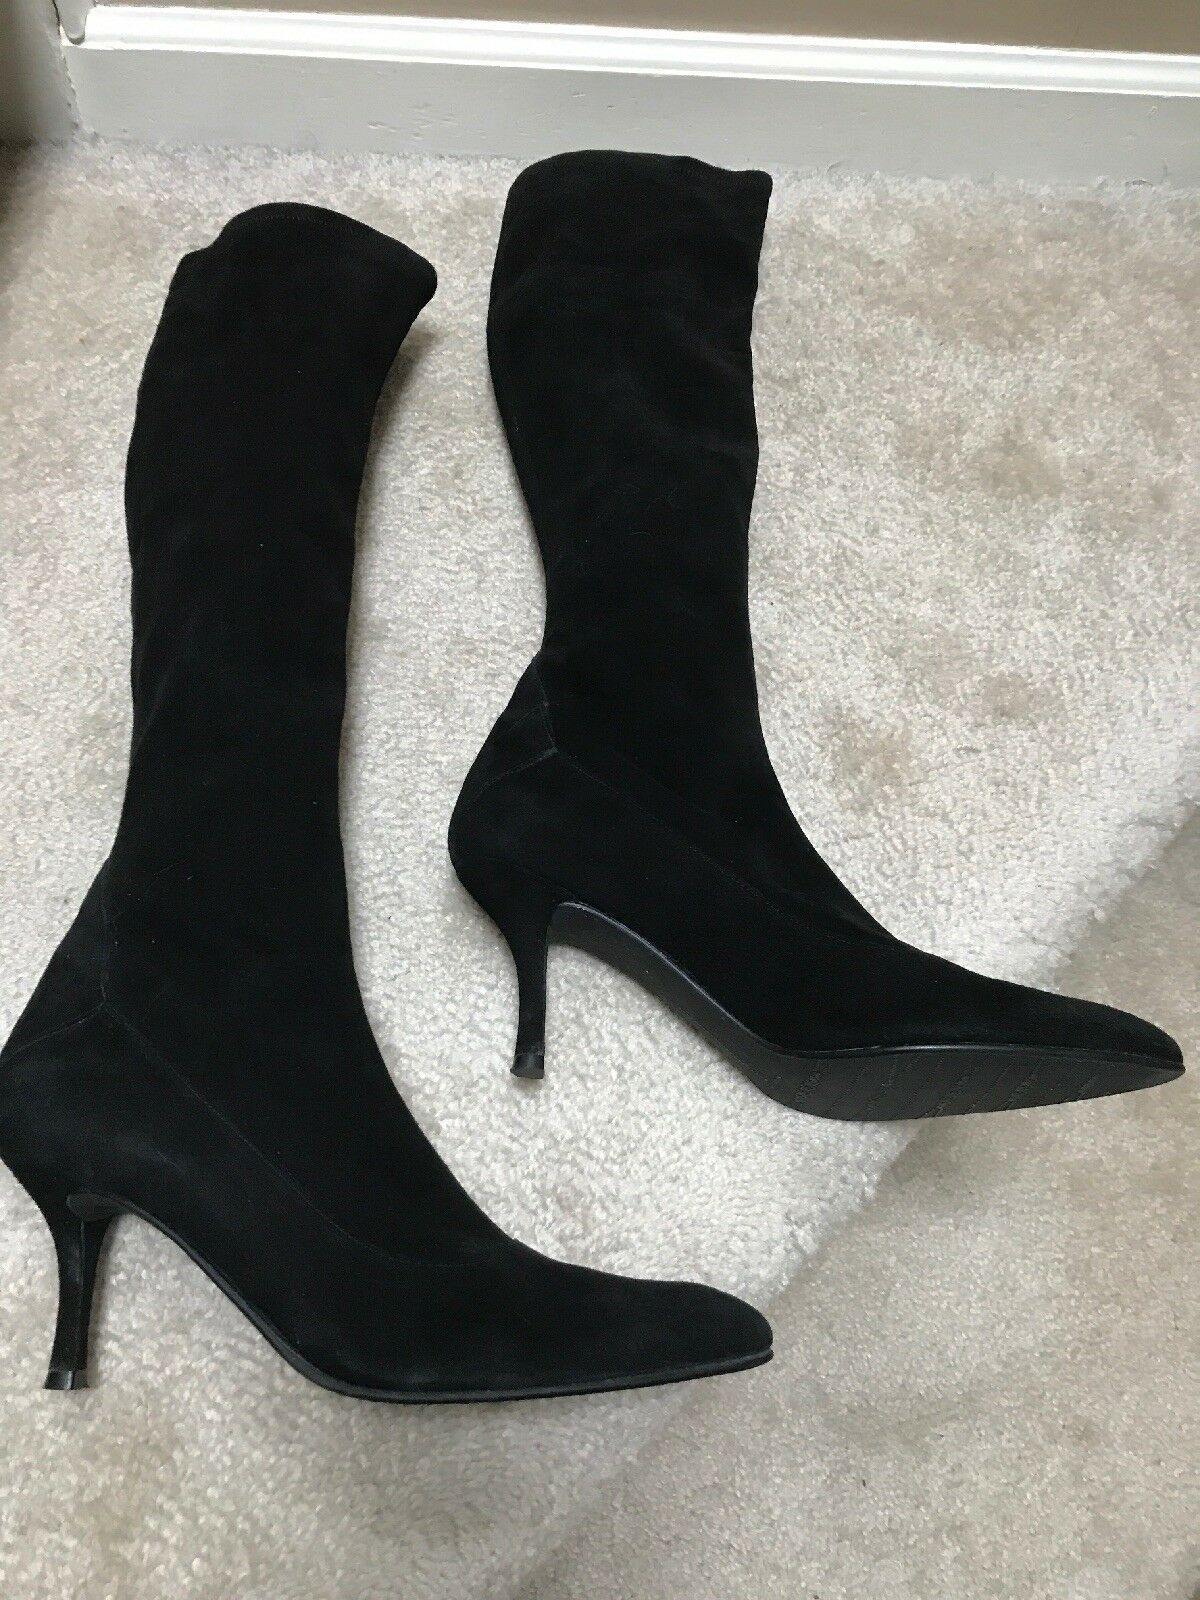 garanzia di credito Stuart Weitzman stivali 10.5 Narrow Narrow Narrow Pre-owned Good Condition nero Microfiber  vendita outlet online